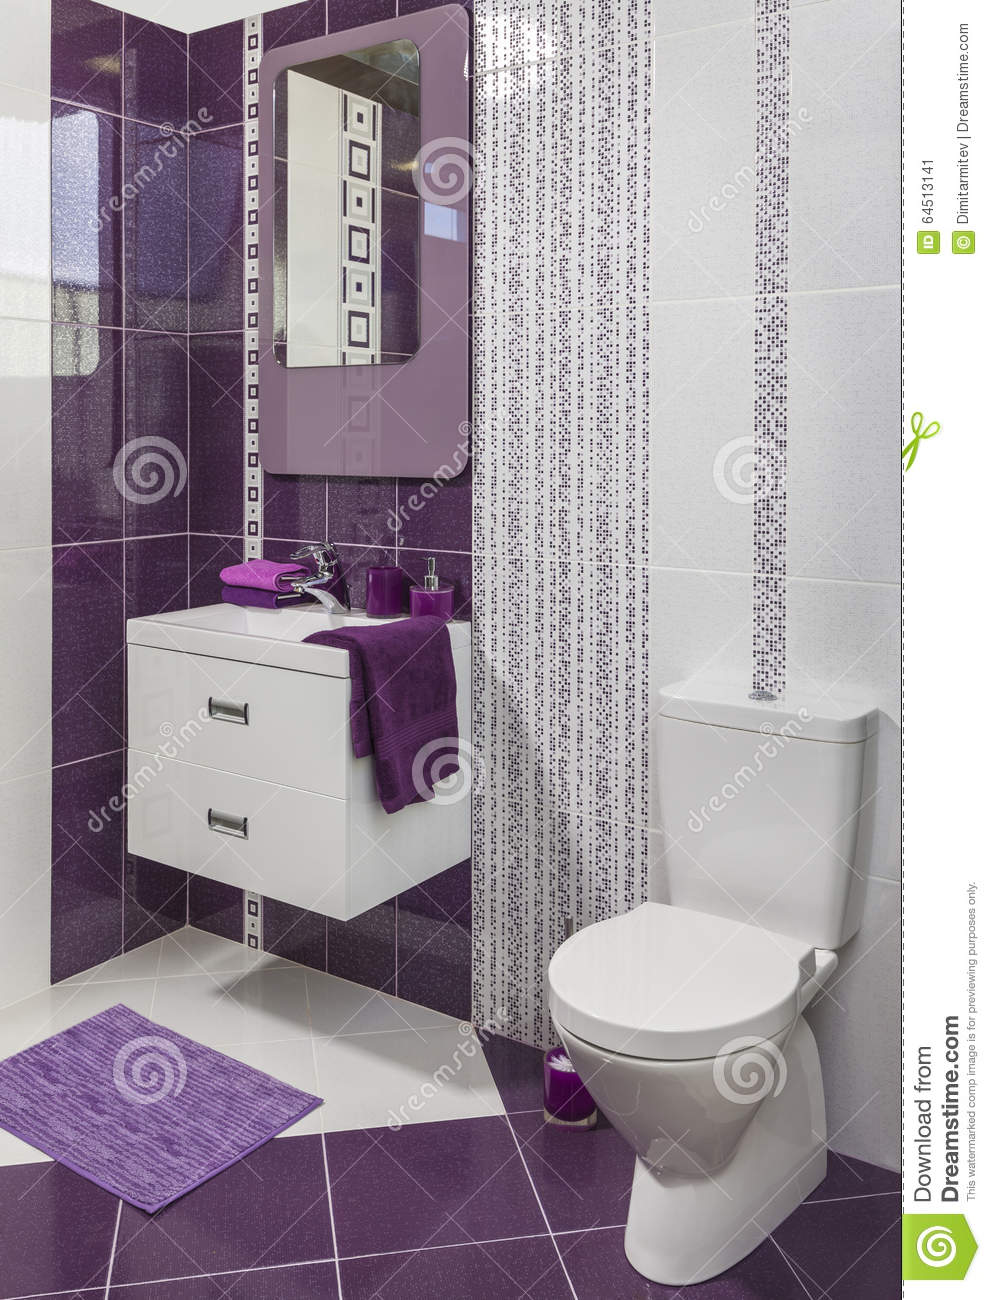 Le style moderne de luxe a d cor la toilette photo stock for Photo toilette moderne